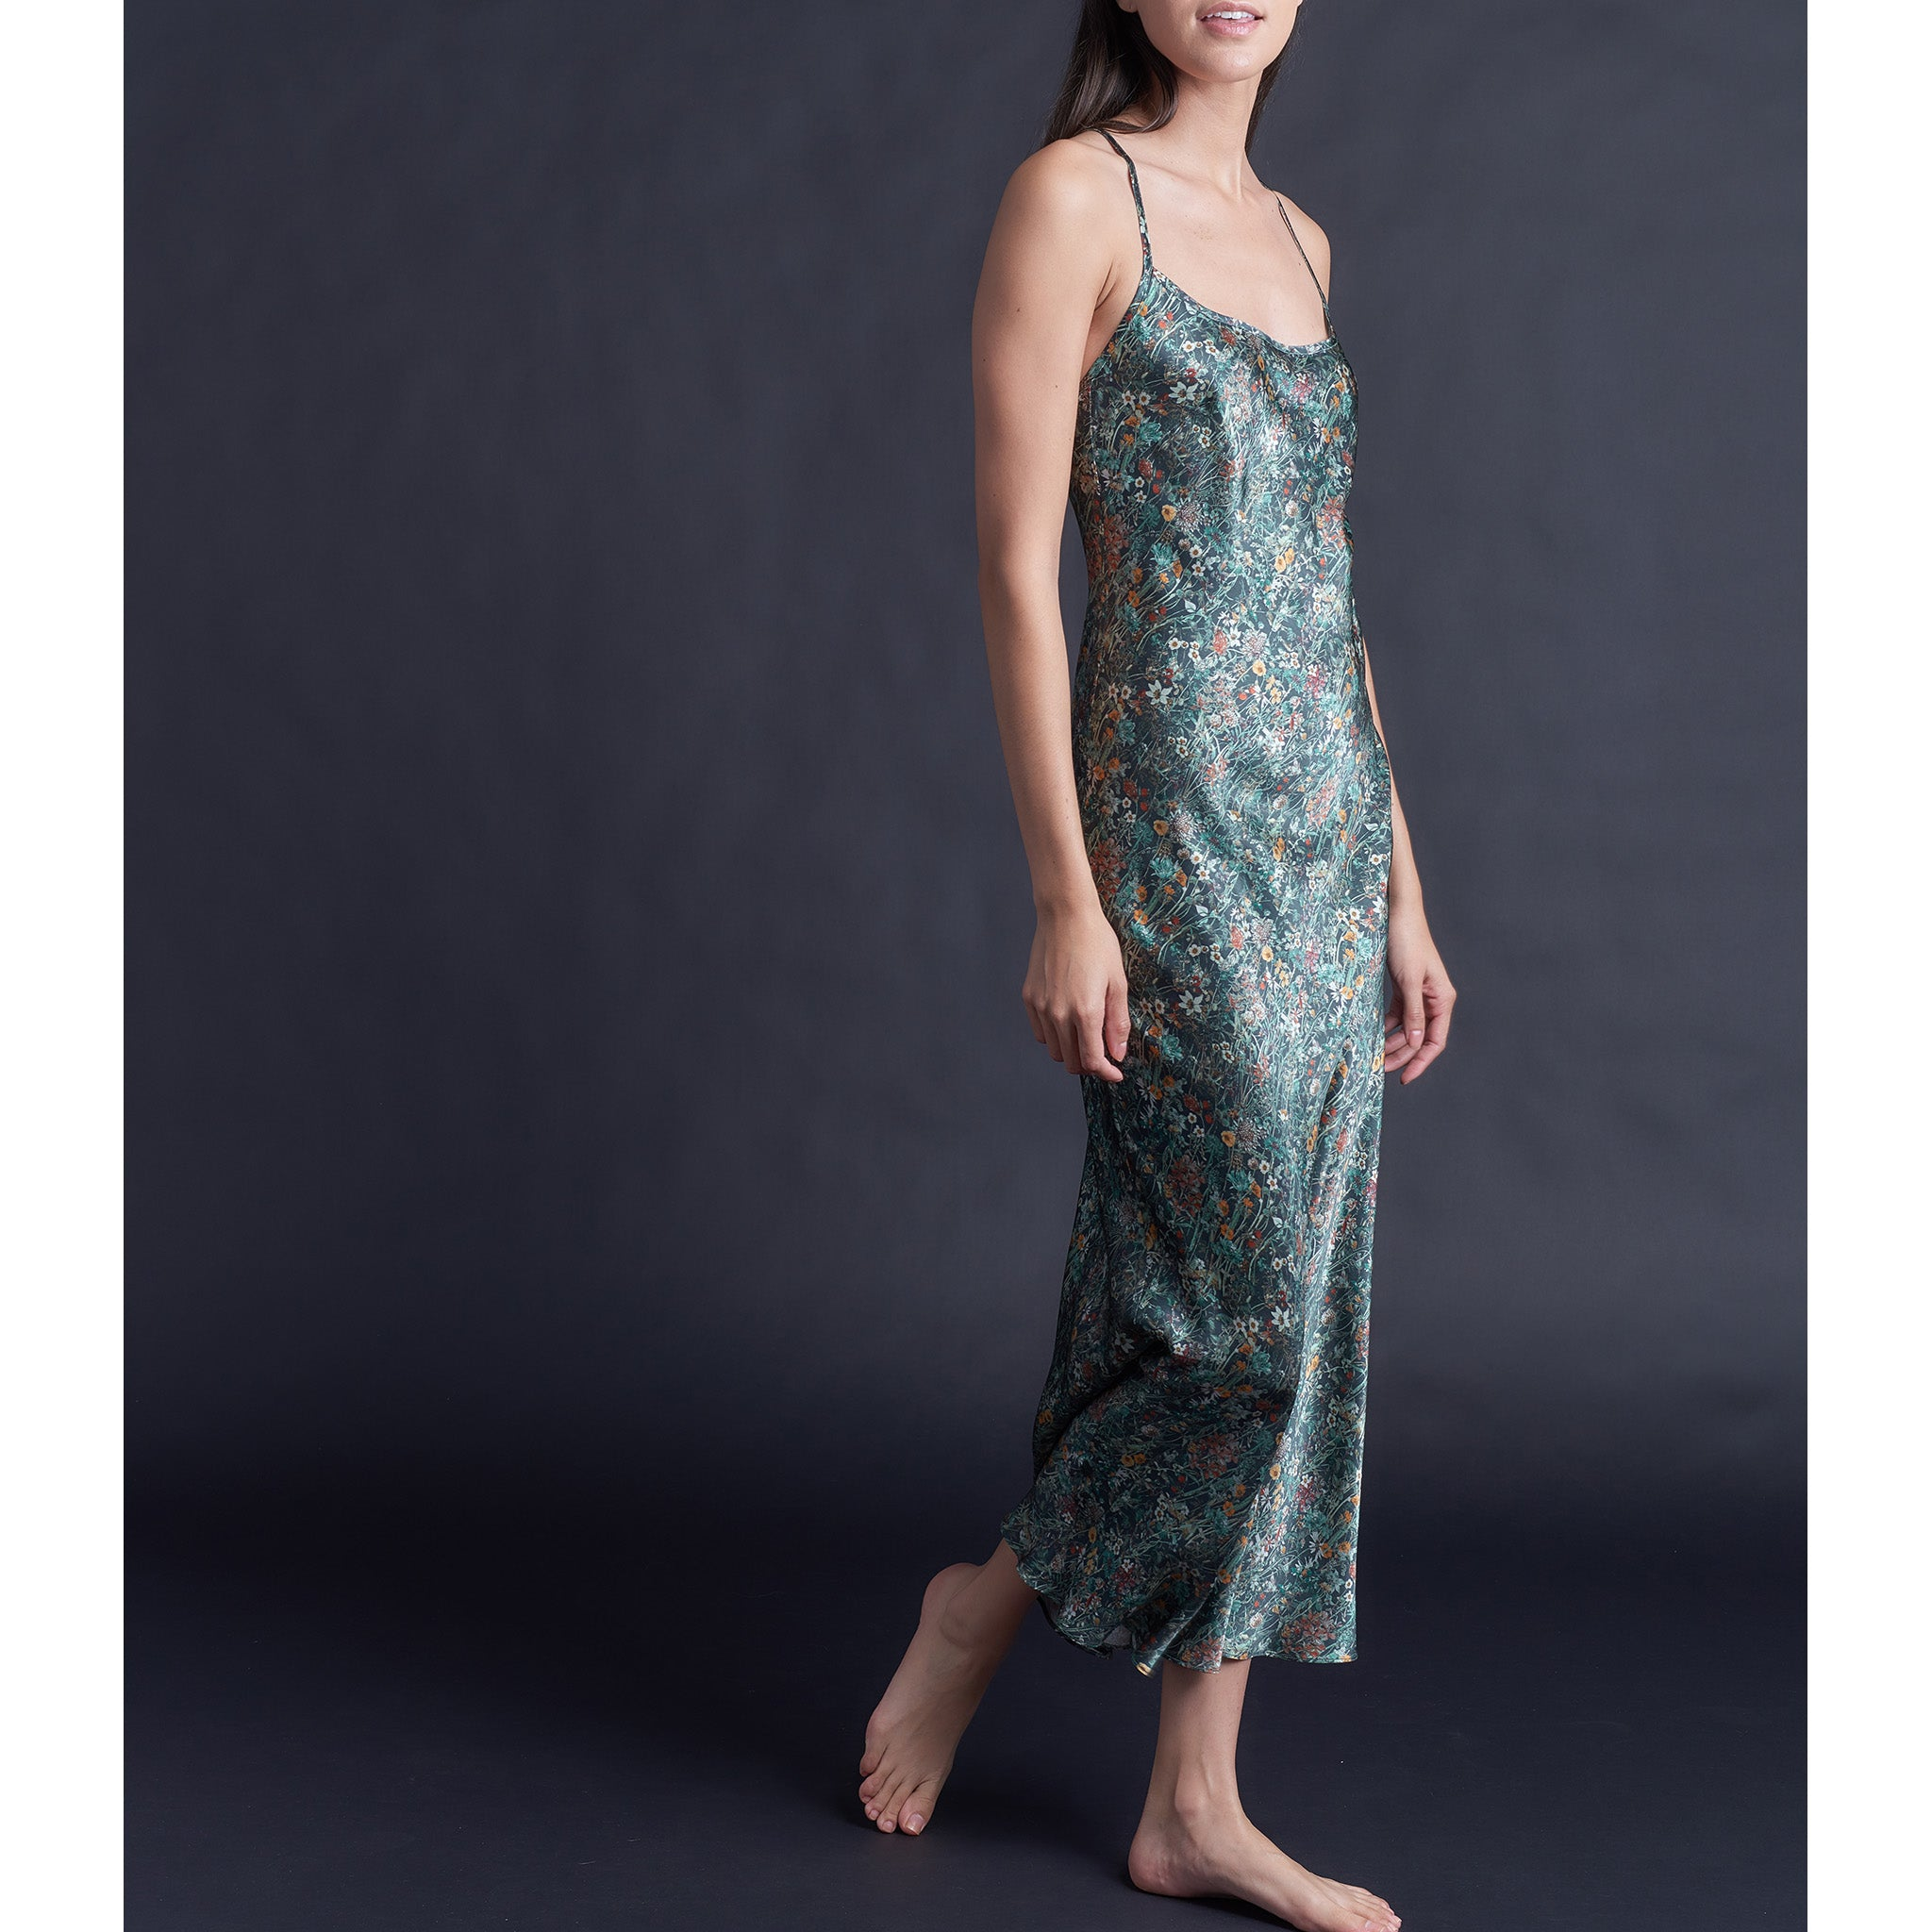 Juno Slip in Emerald Wildflowers Liberty Print Silk Satin